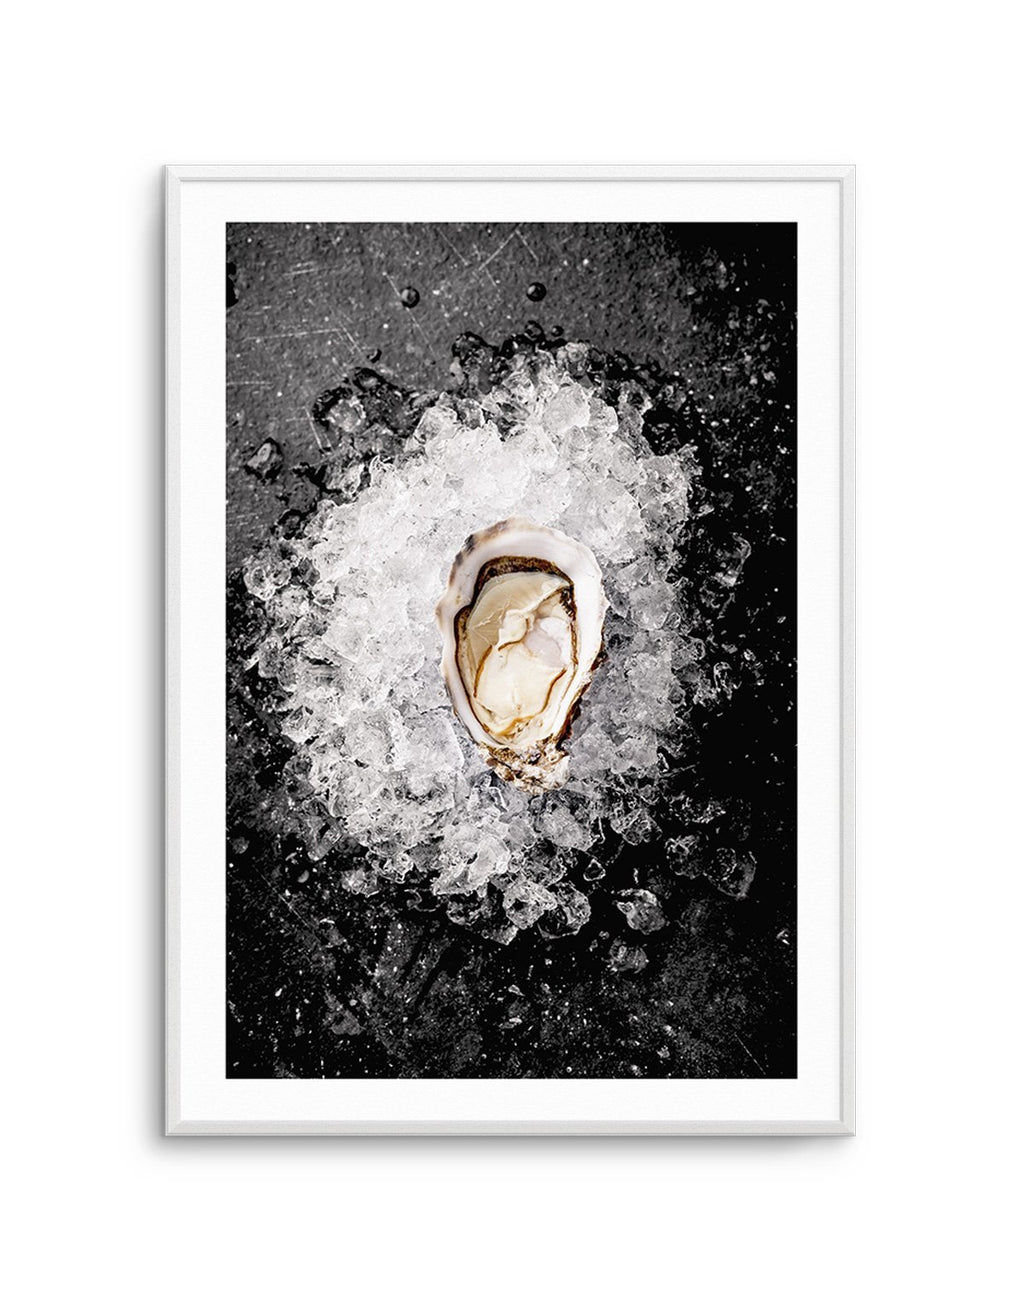 Oysters on Ice - Olive et Oriel